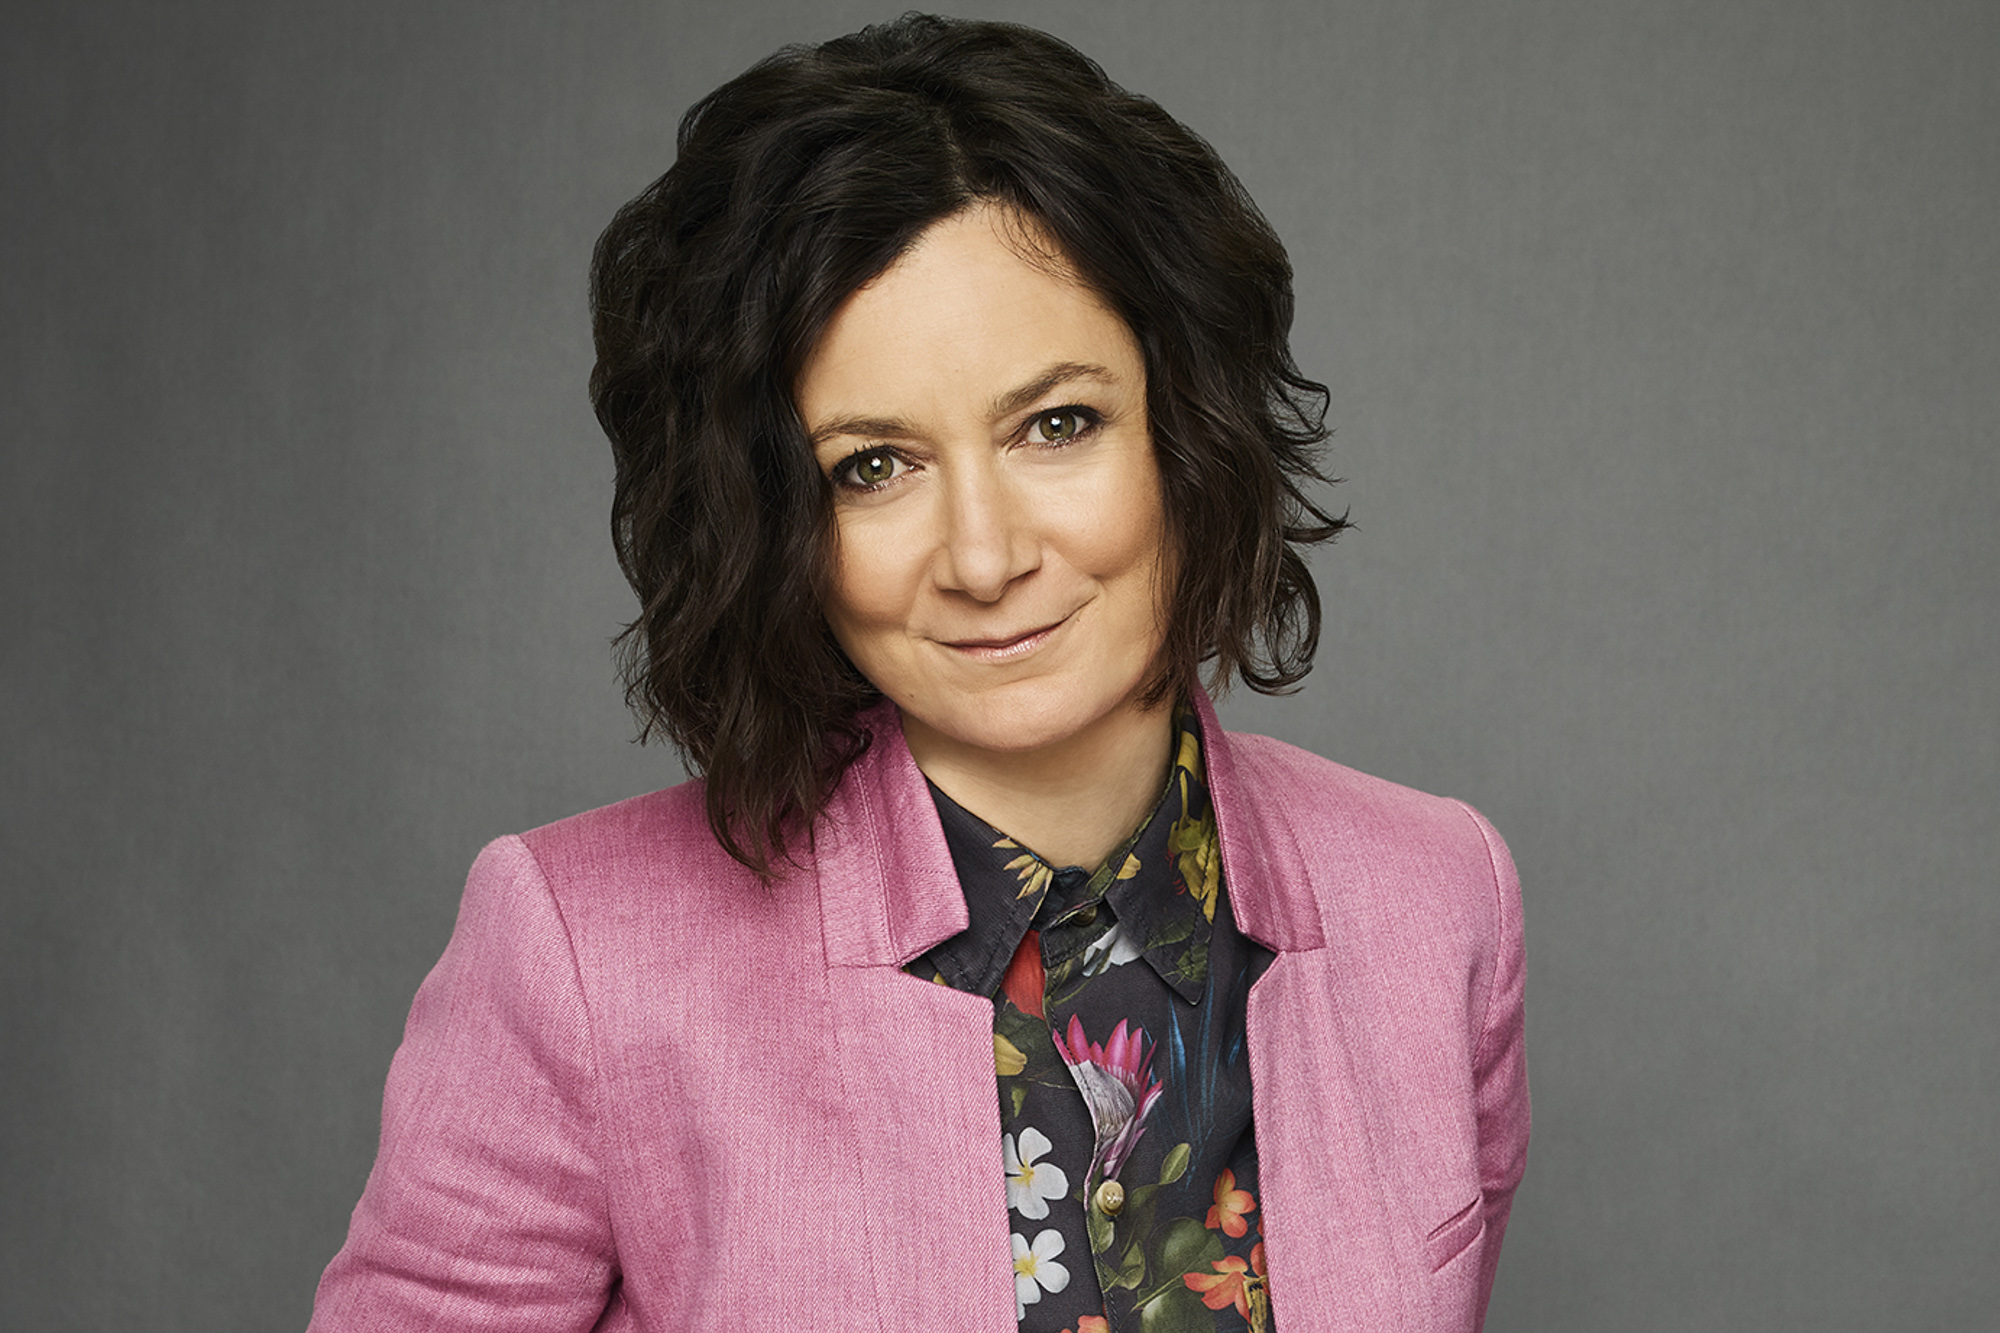 She wasn't always Darlene! The Conners star Sara Gilbert looks back on a lifetime of roles